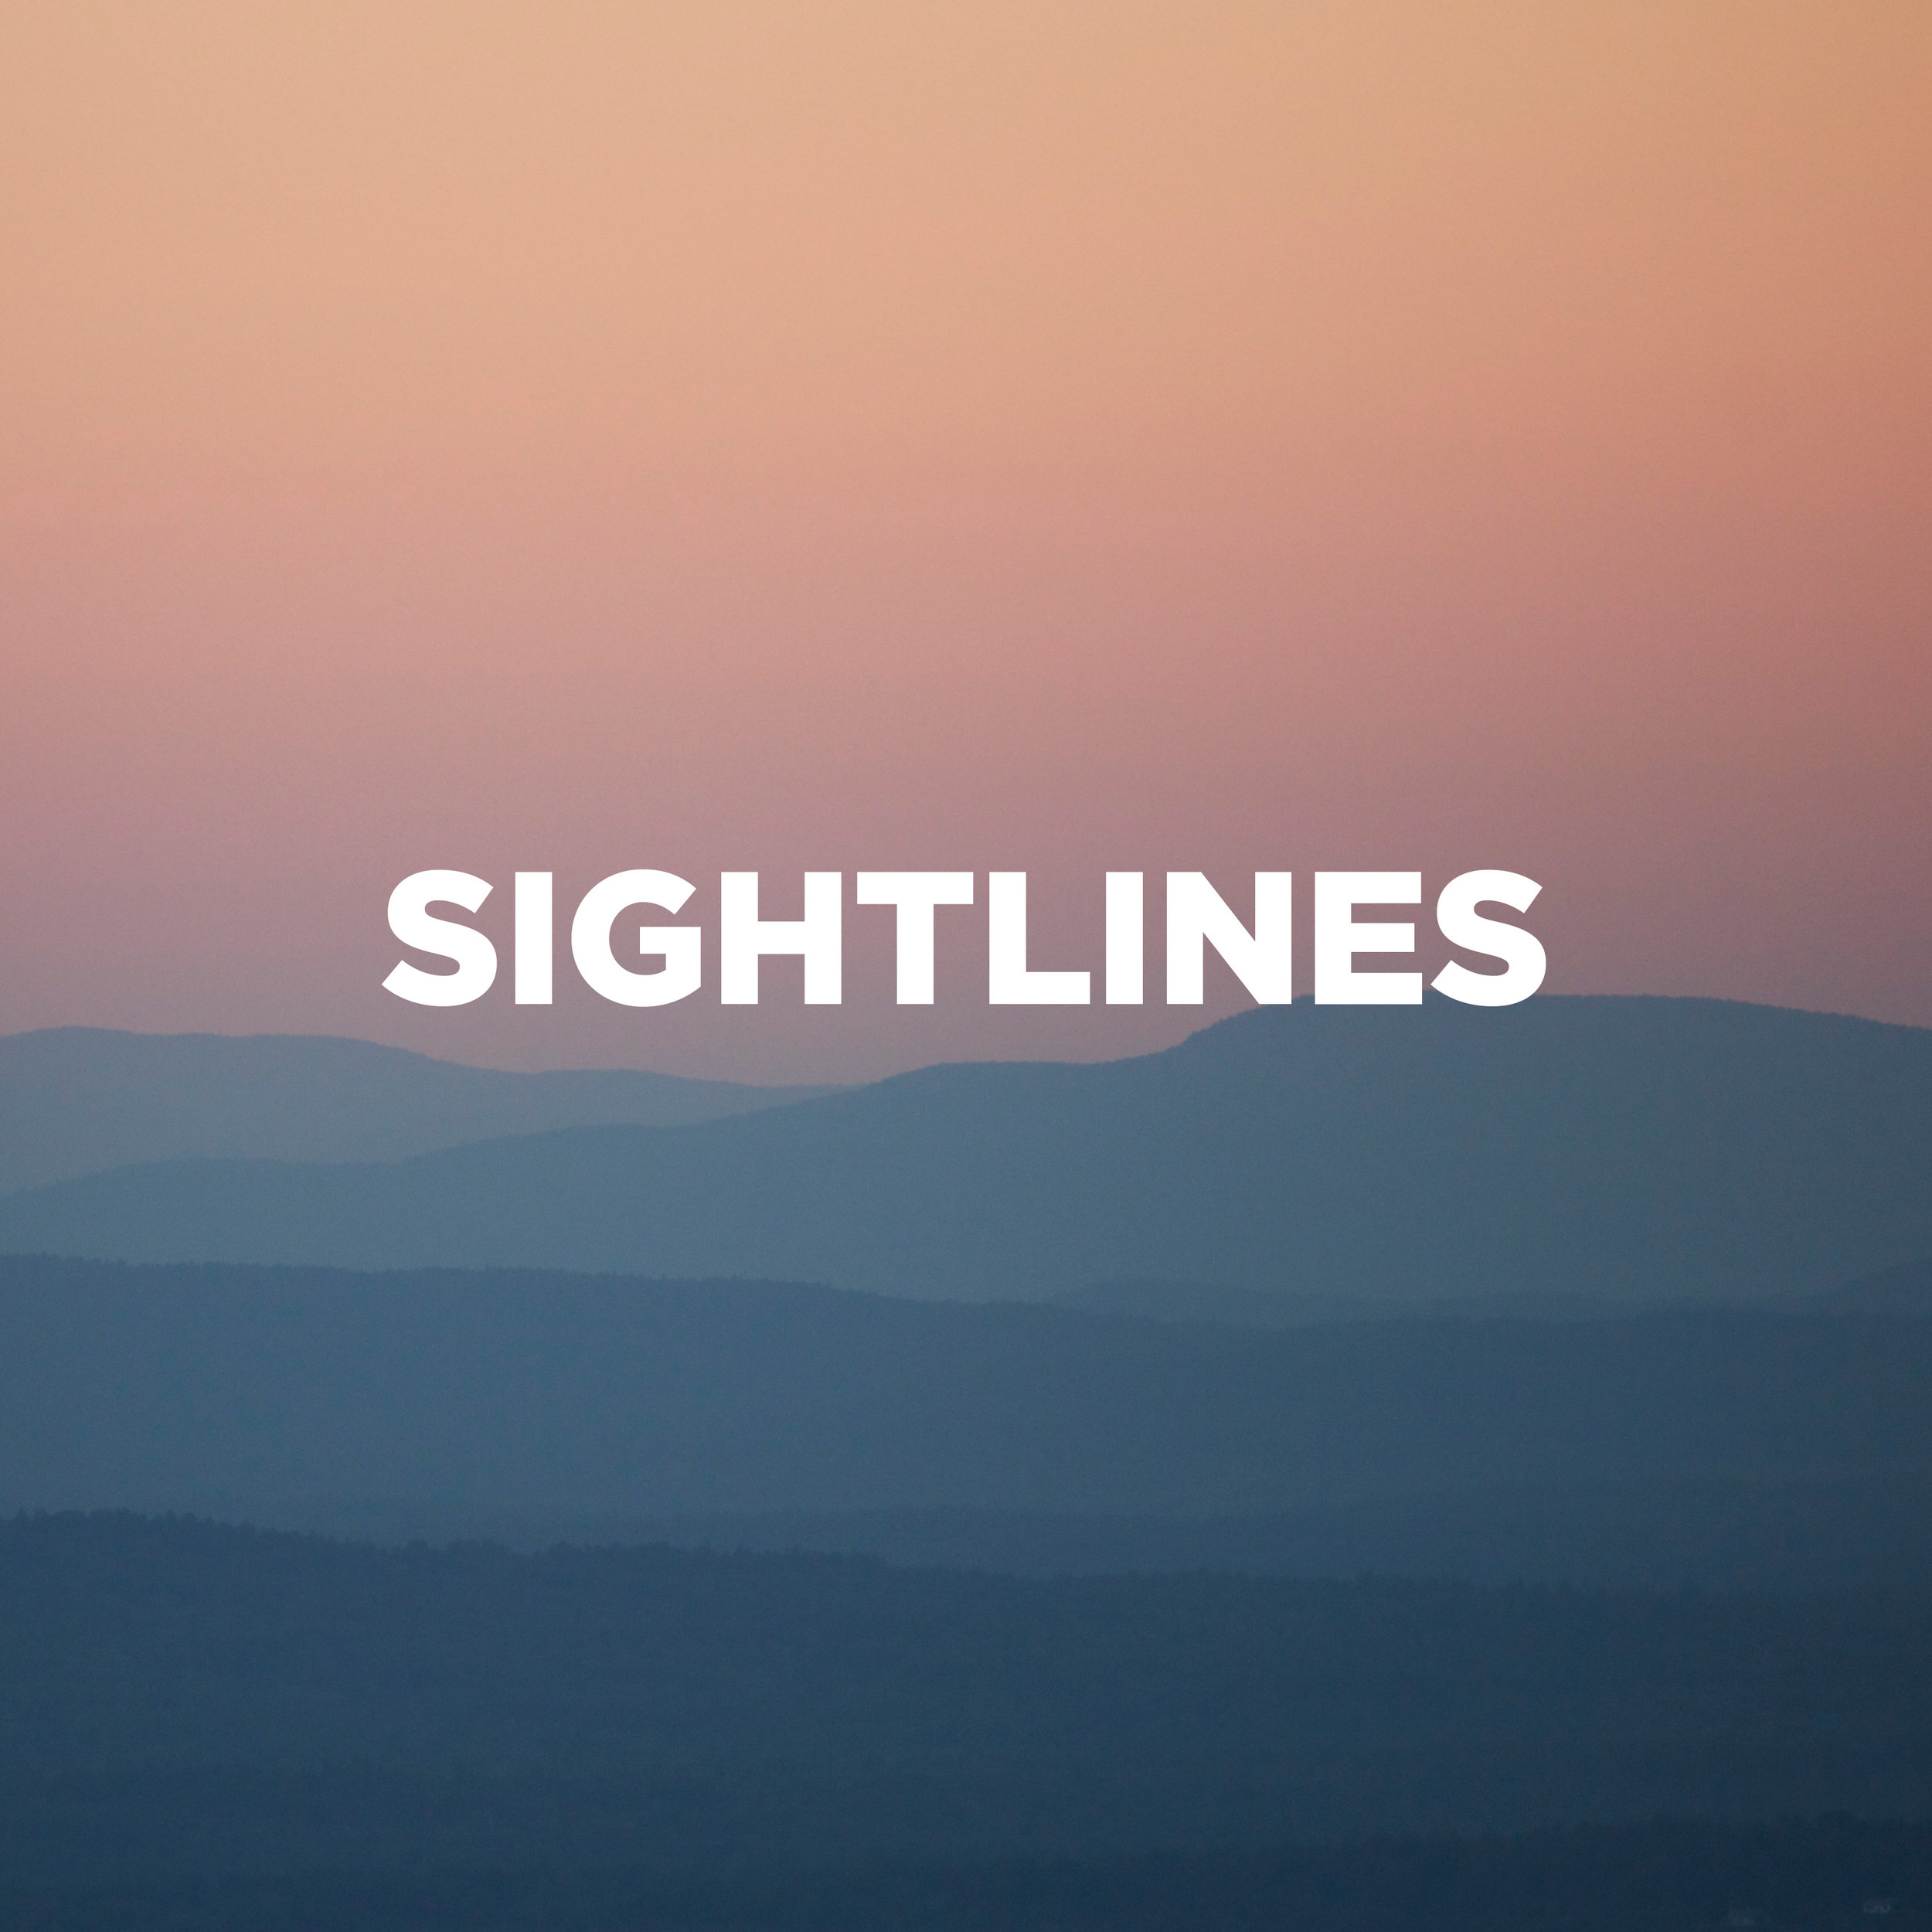 Sightlines  ·  May 2015